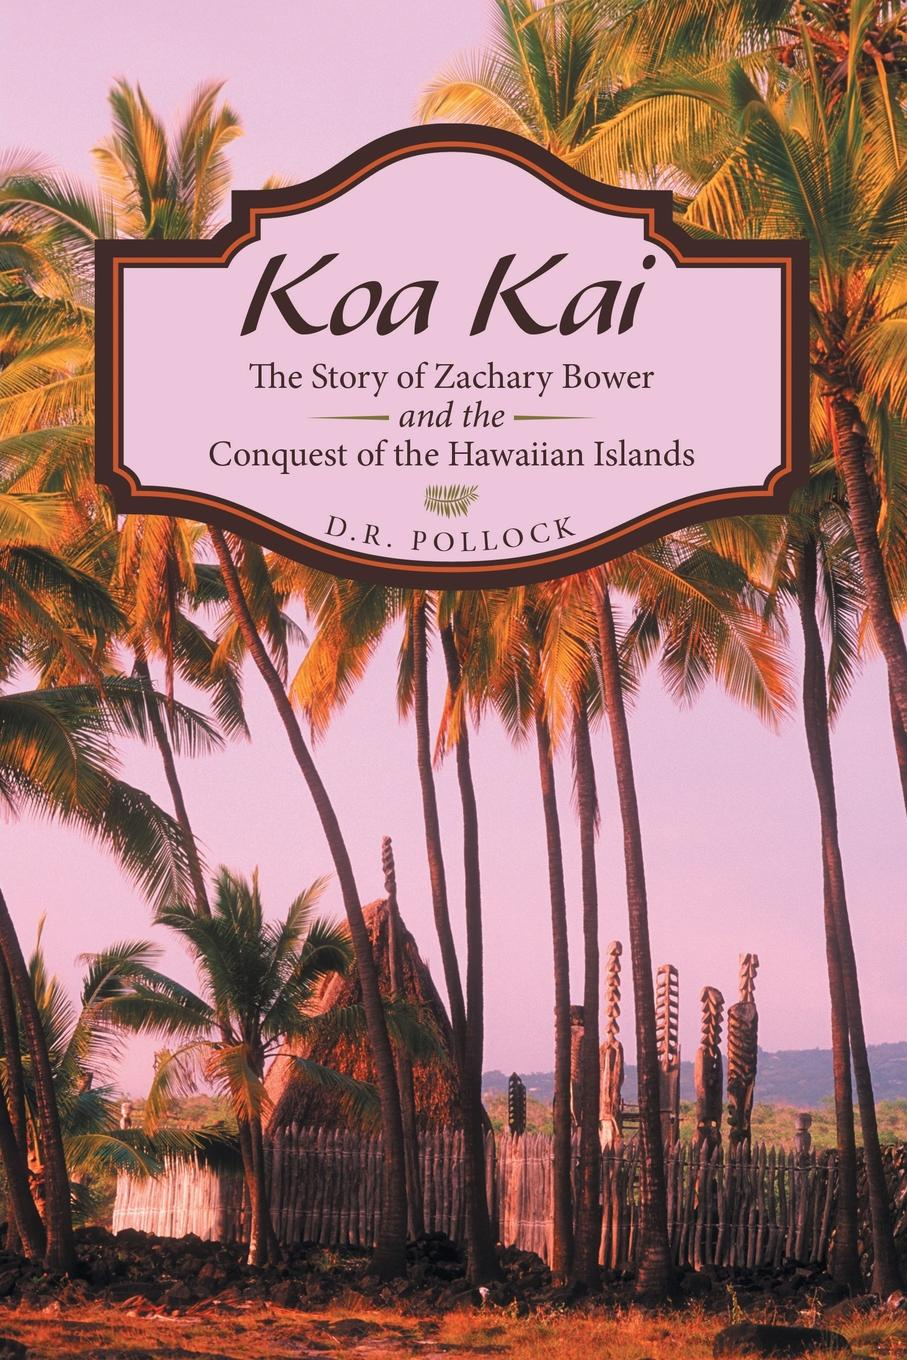 D.R. Pollock Koa Kai. The Story of Zachary Bower and the Conquest of the Hawaiian Islands d r pollock koa kai the story of zachary bower and the conquest of the hawaiian islands